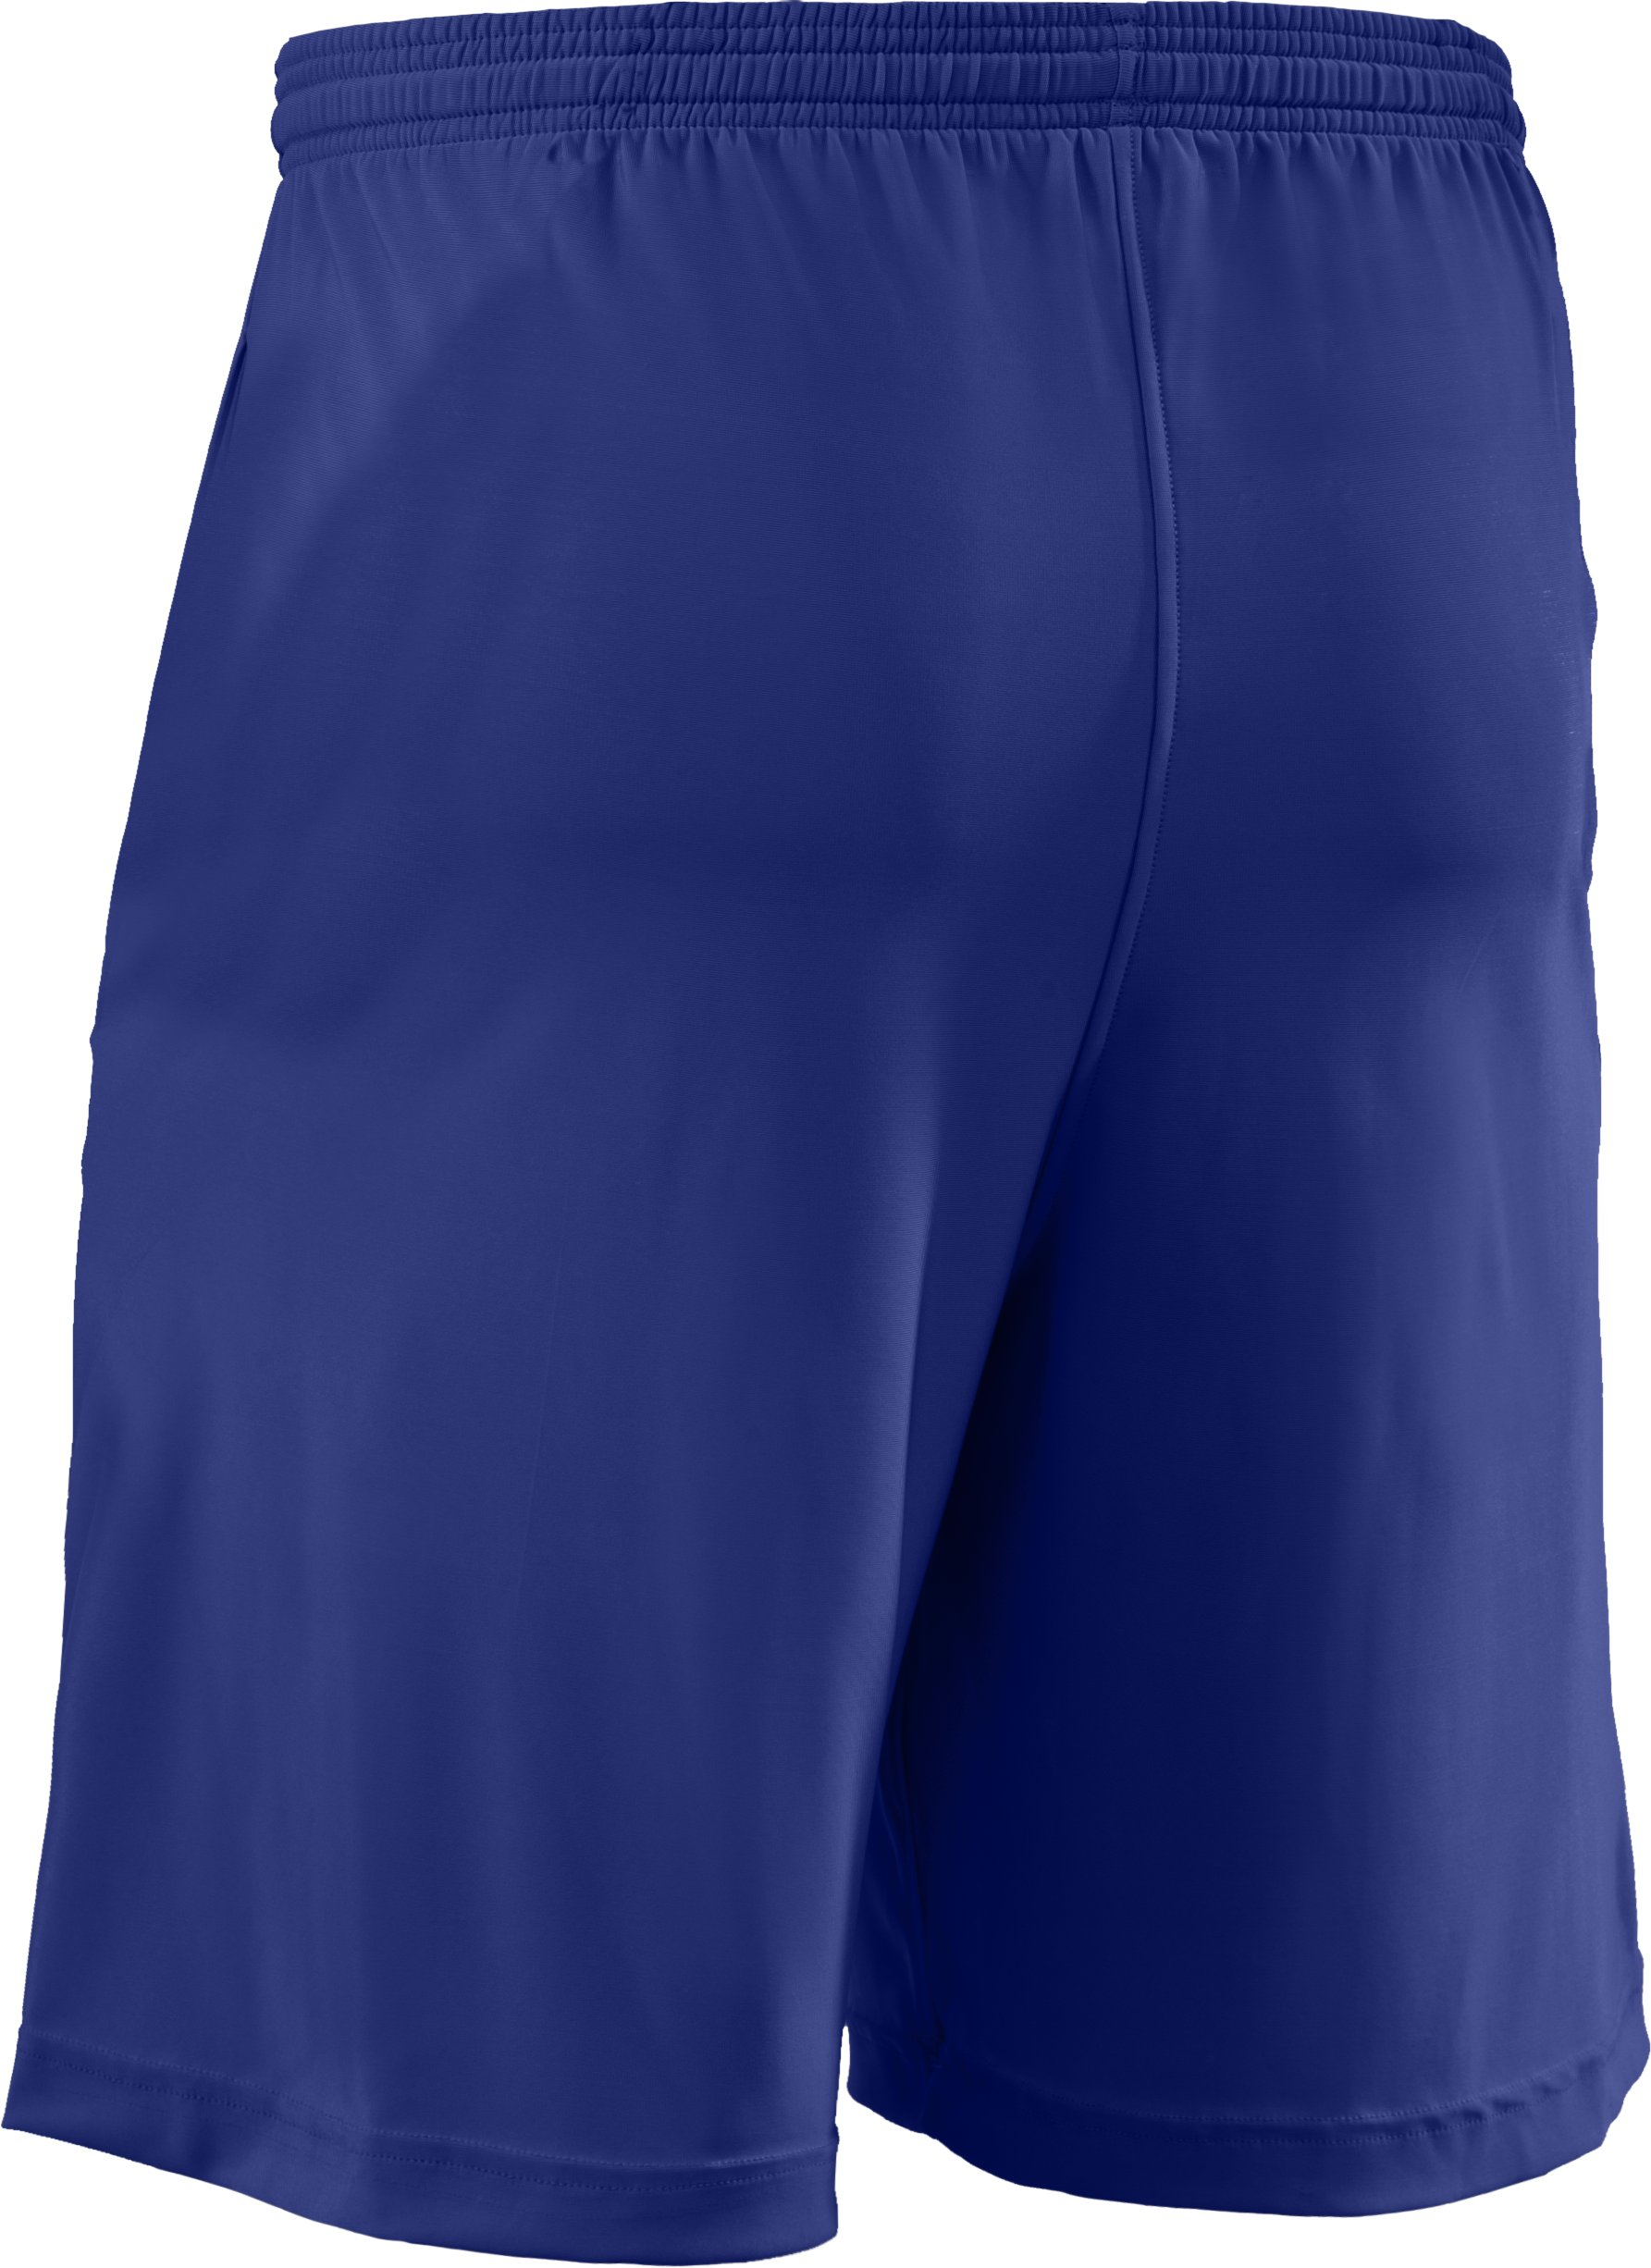 Men's Team Micro Short II, Royal, undefined